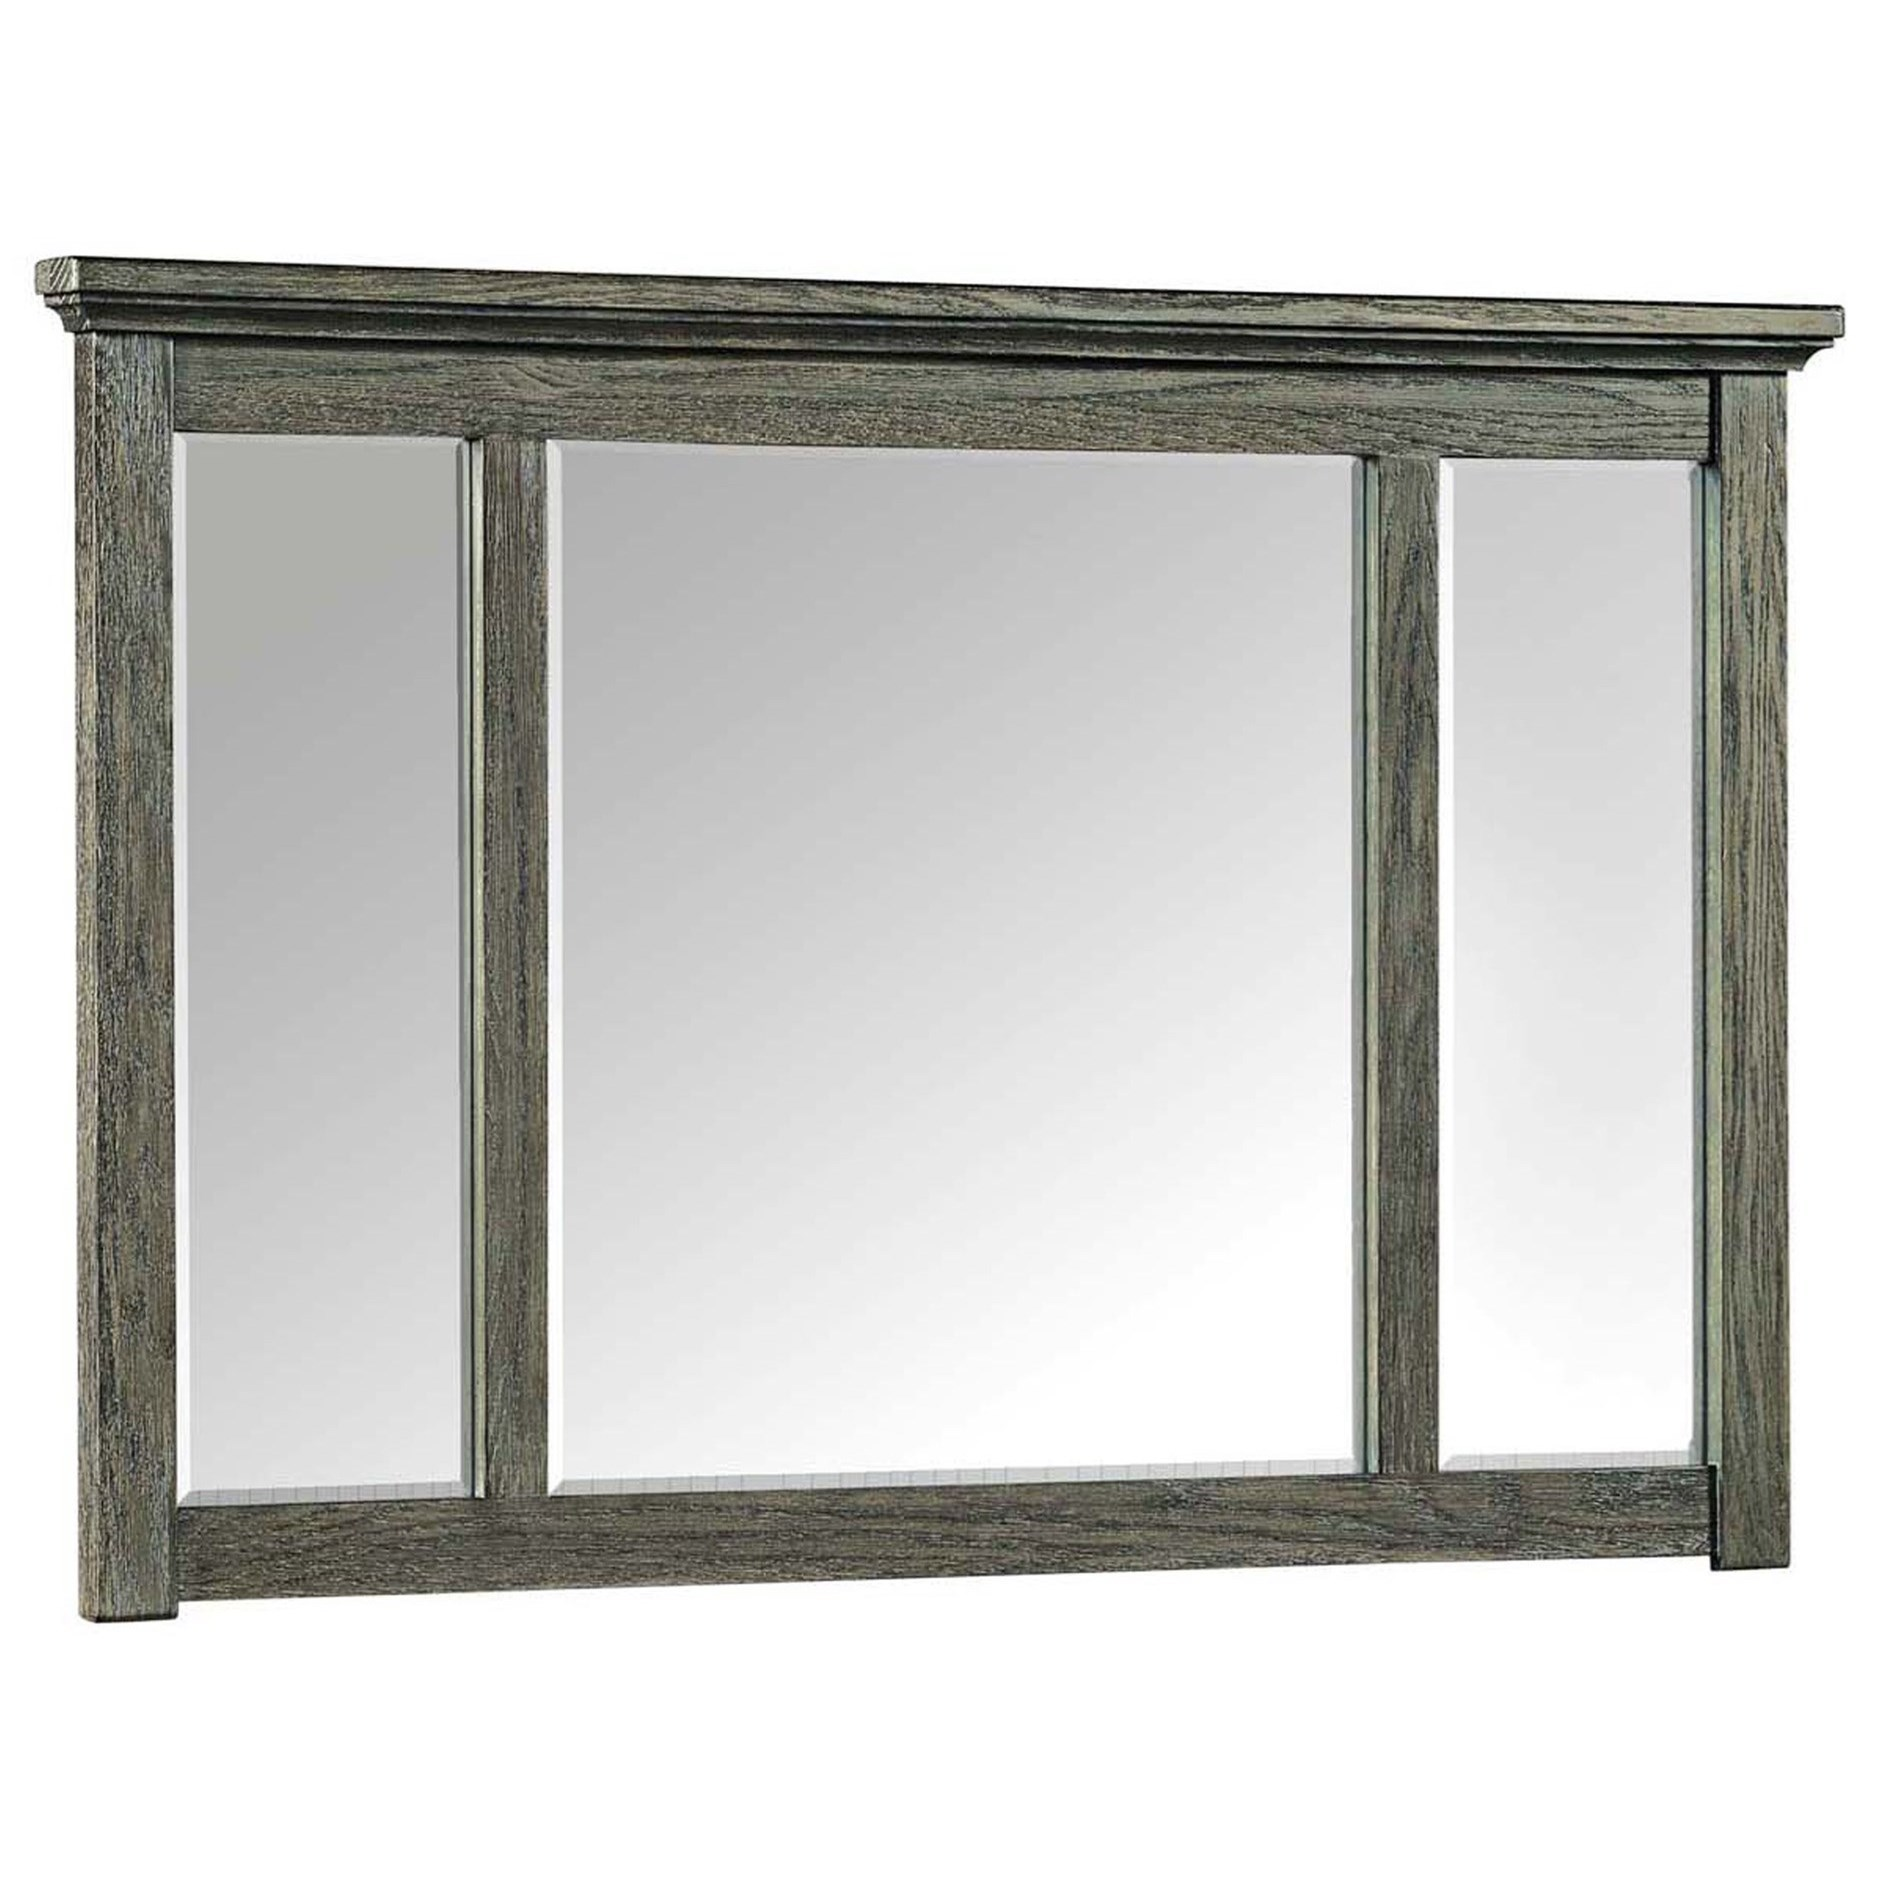 Oak Park Pewter Dresser Mirror by Intercon at Rife's Home Furniture